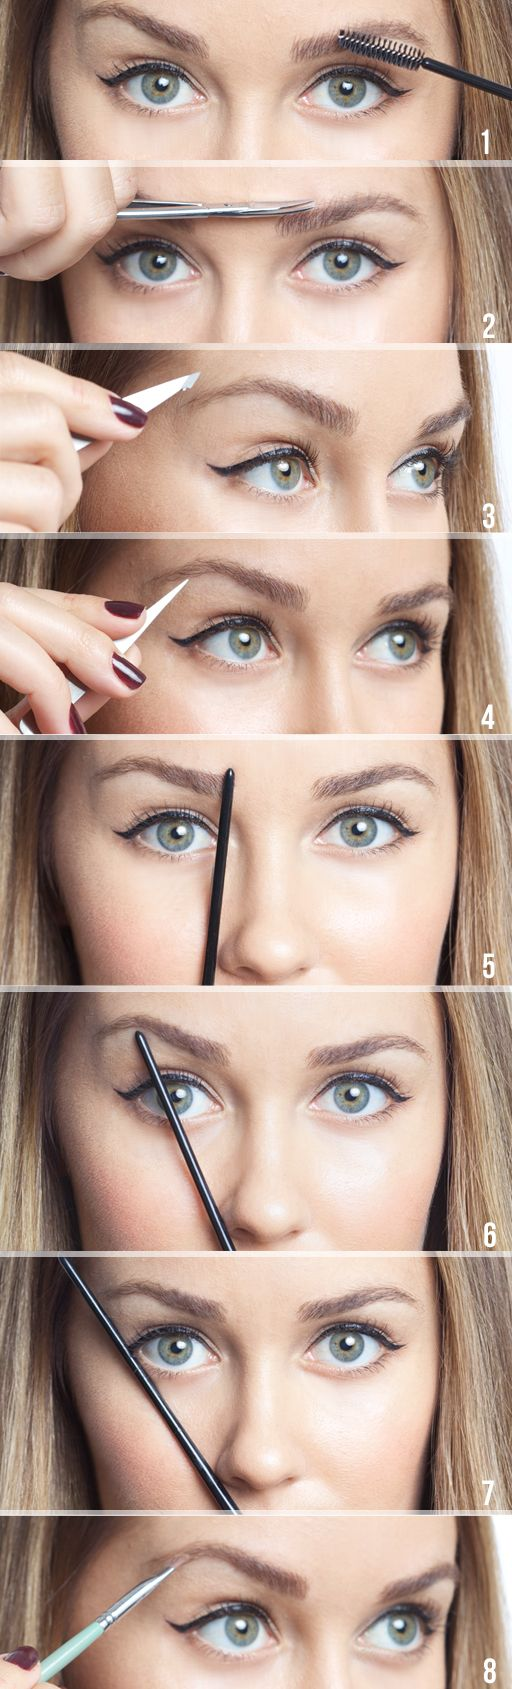 We've gotten tons of requests for a brow tutorial– how to shape them, how to fill them in, how to elongate them, etc… This is so great because the correct brow shape can really lift the eye and slim the face.  First let me share my #1 rule: DO NOT OVER-PLUCK!!  Please!  There is nothing pretty about thin overly-tweezed brows.  Brows frame your eyes.  Cardinal sin #2: do not shape them into tadpoles with thin tails.  Cardinal sin #3: do not shave them or use a razor of any kind.  If you have…